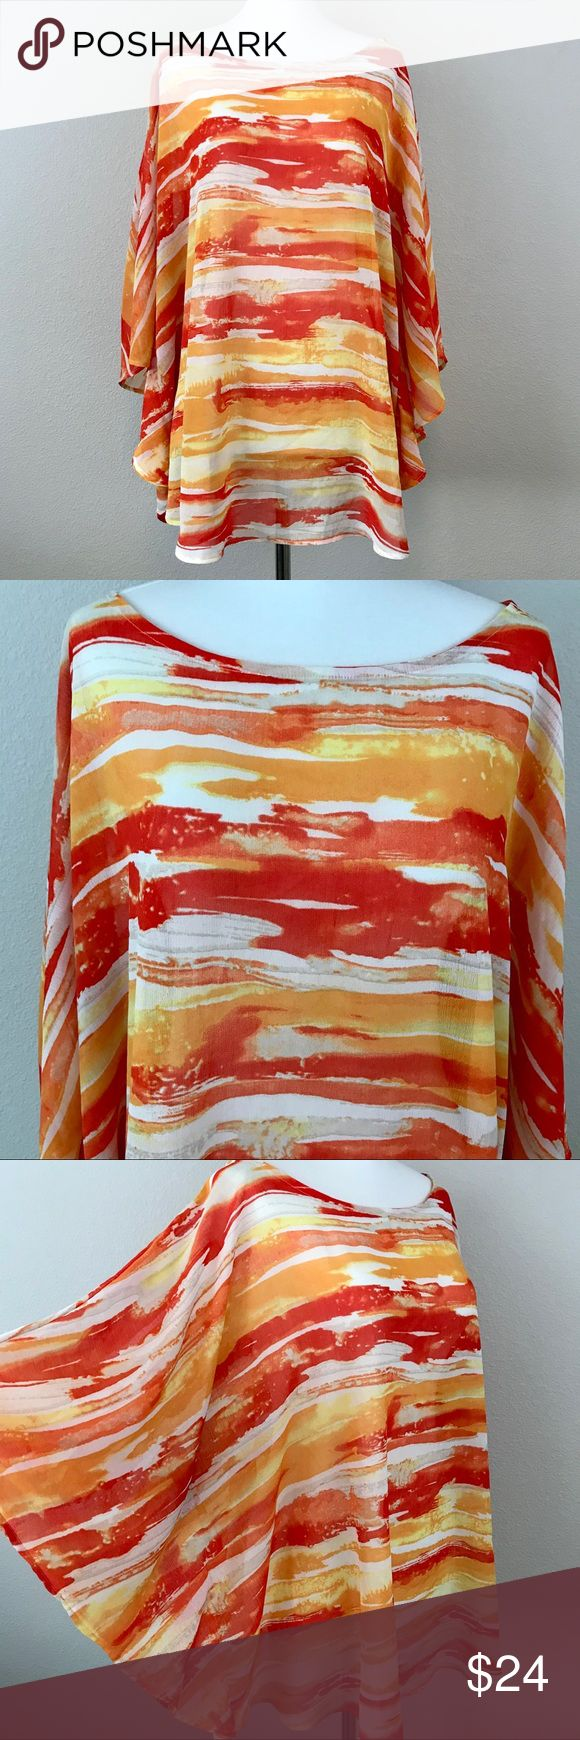 """CHICO's SHEER BATWING TOP - SIZE L/XL Breezy poncho style top in gorgeous orange and yellow hues. Light and bright with so much class! Sides are closed so this is not actually a poncho, but gives a fun effect. Approx. 29"""" long. There is a small run in the fabric, as pictured, which is hard to notice unless up close. Otherwise, great, barely worn condition! Chico's Tops Blouses"""